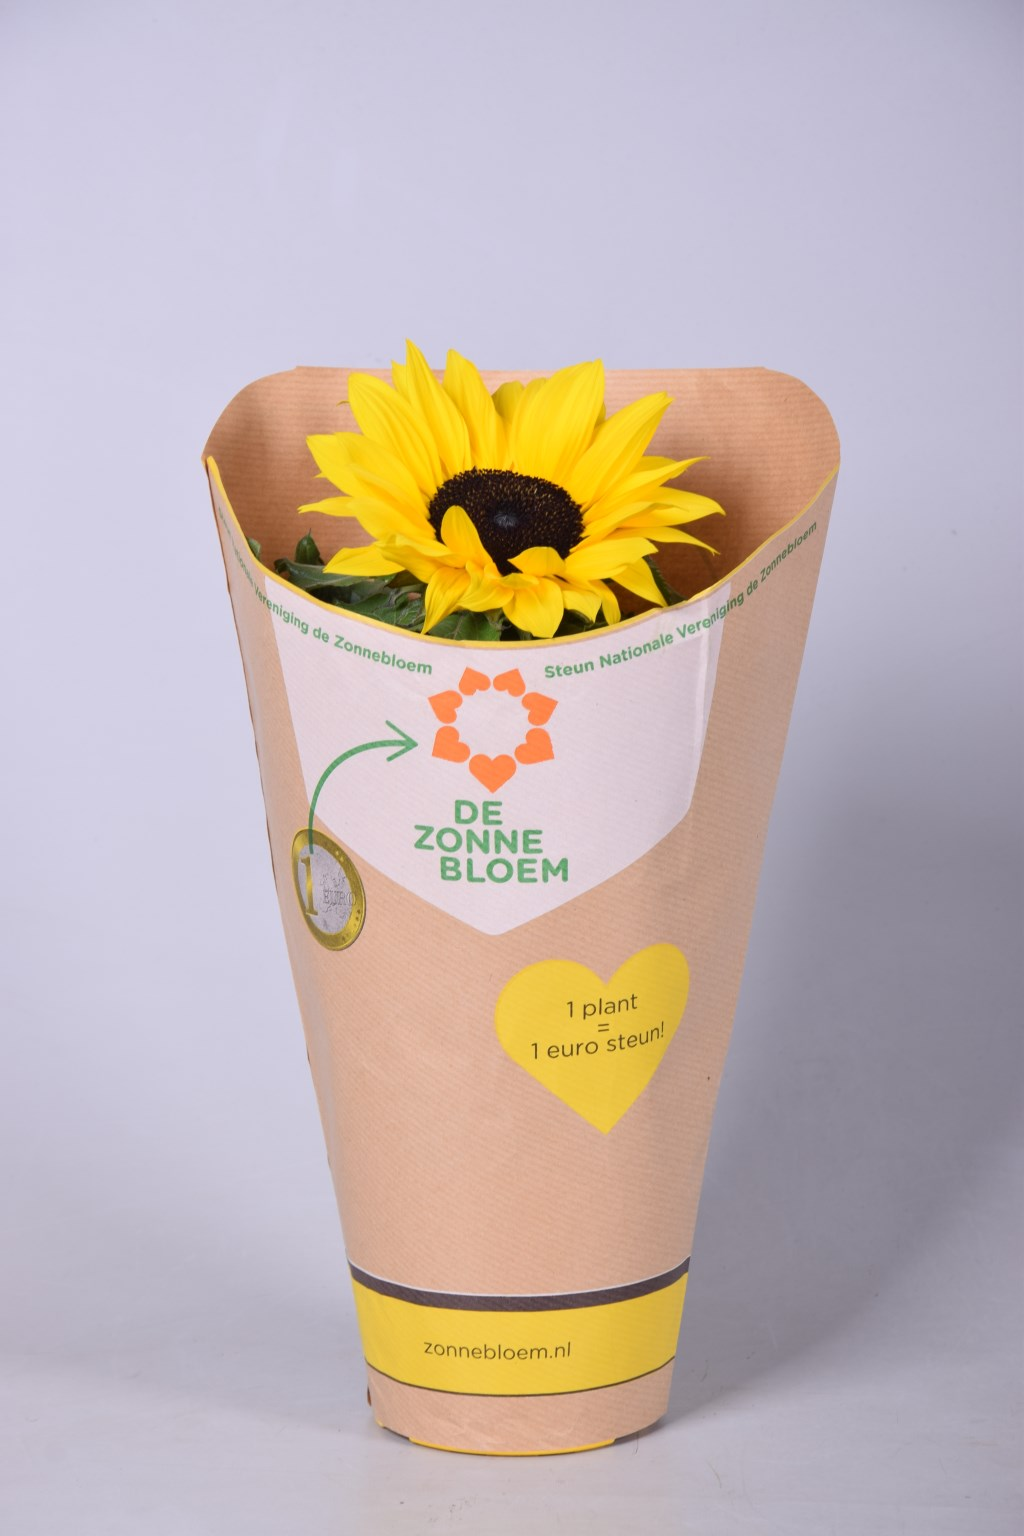 Foto: sunsationsunflower © Verhagen